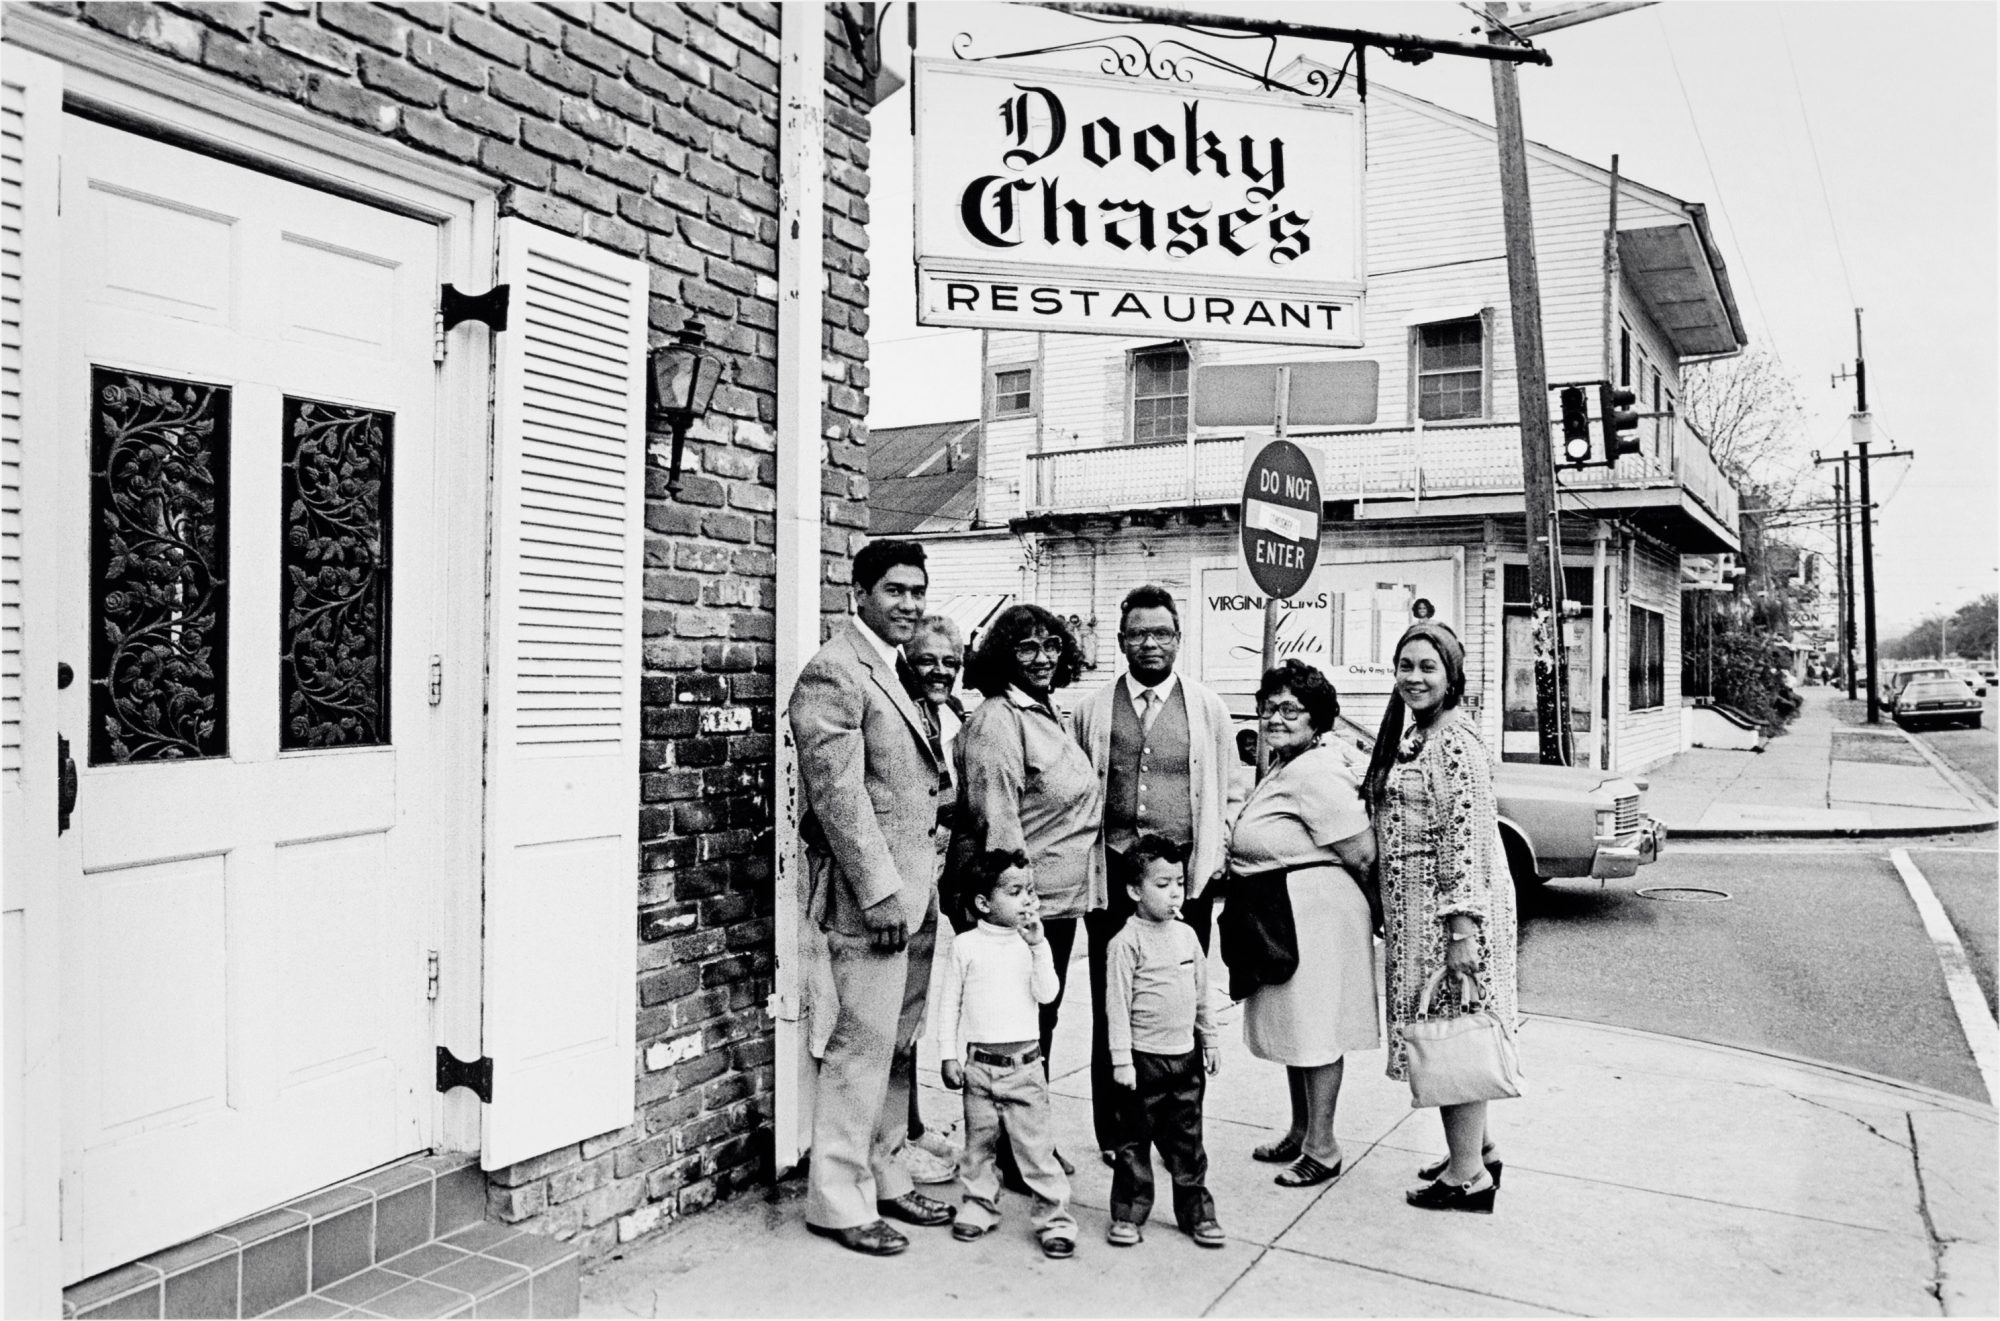 The Chase family outside Dooky Chase's Restaurant in New Orleans' French Quarter